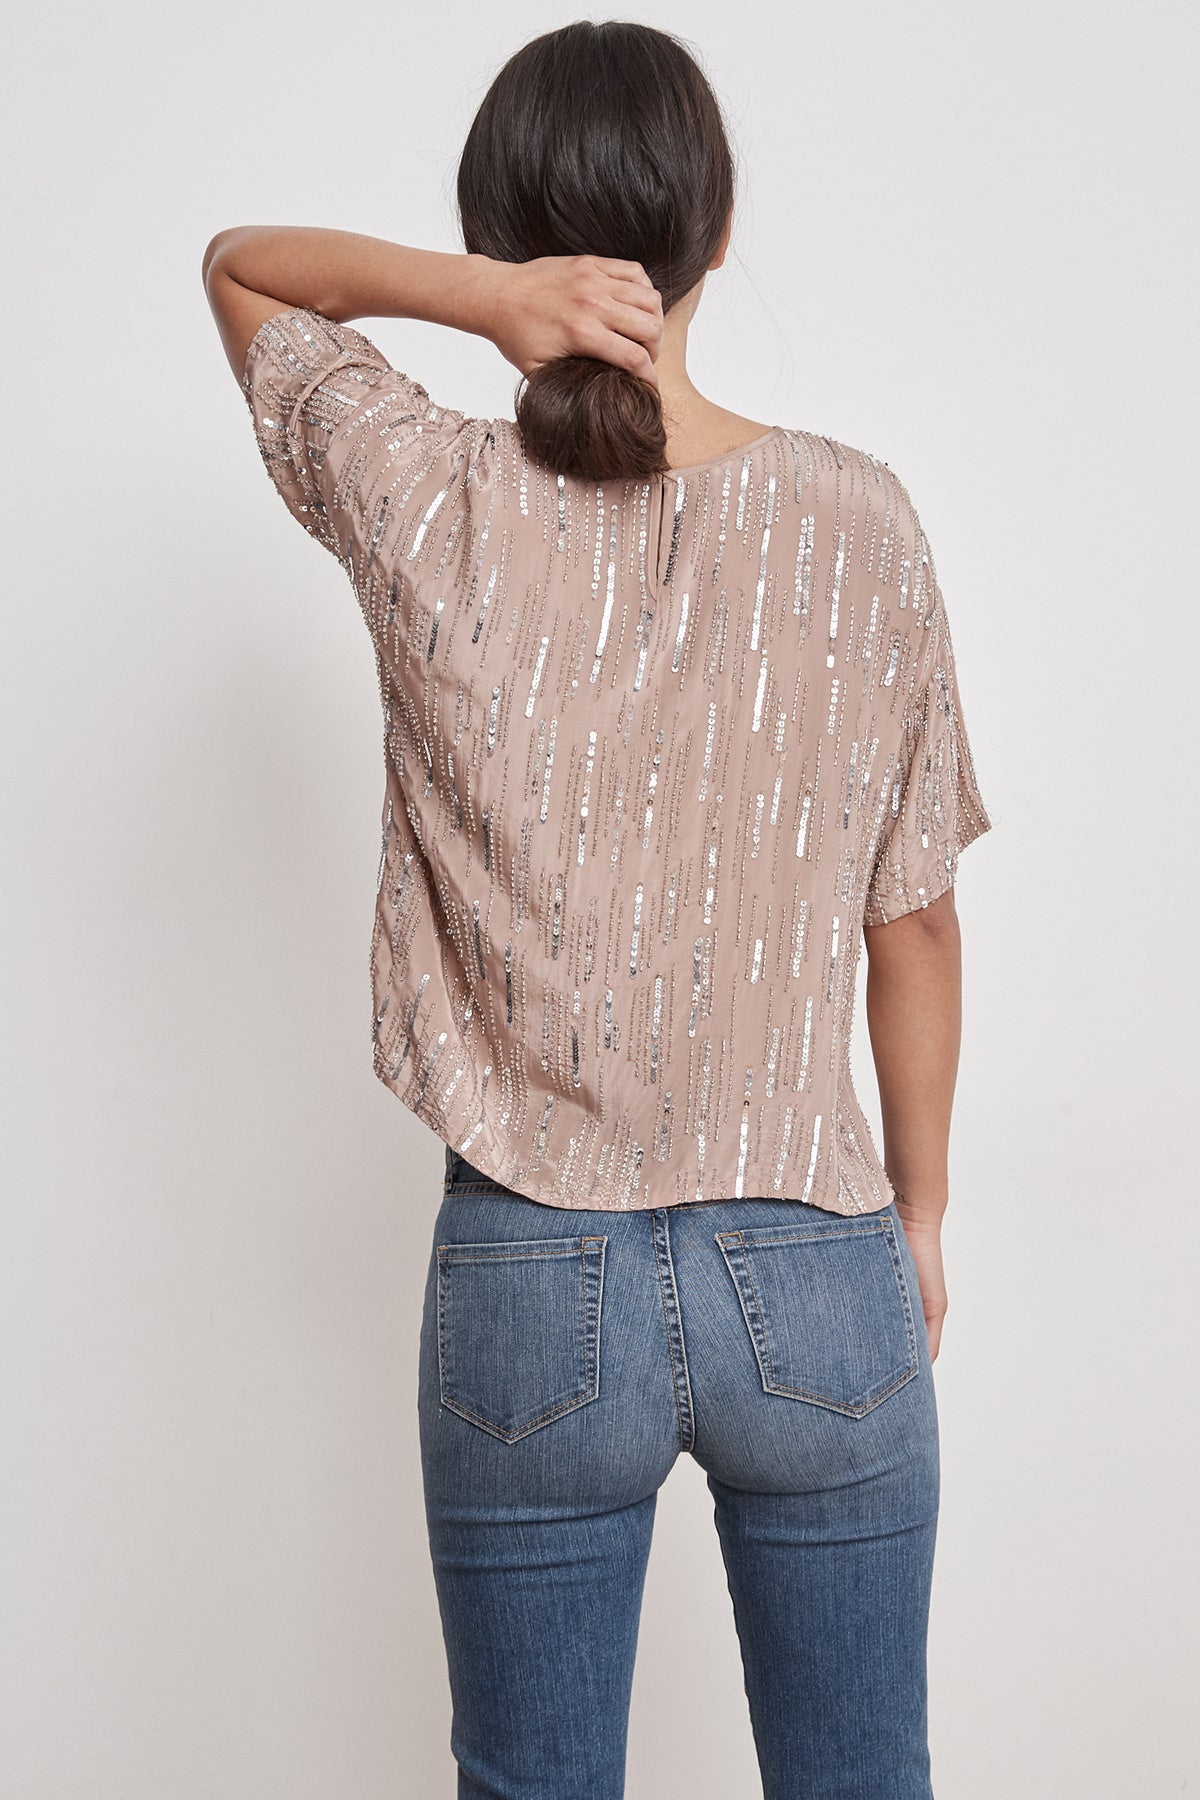 BRIGHTON RAIN DROP SEQUINS TOP